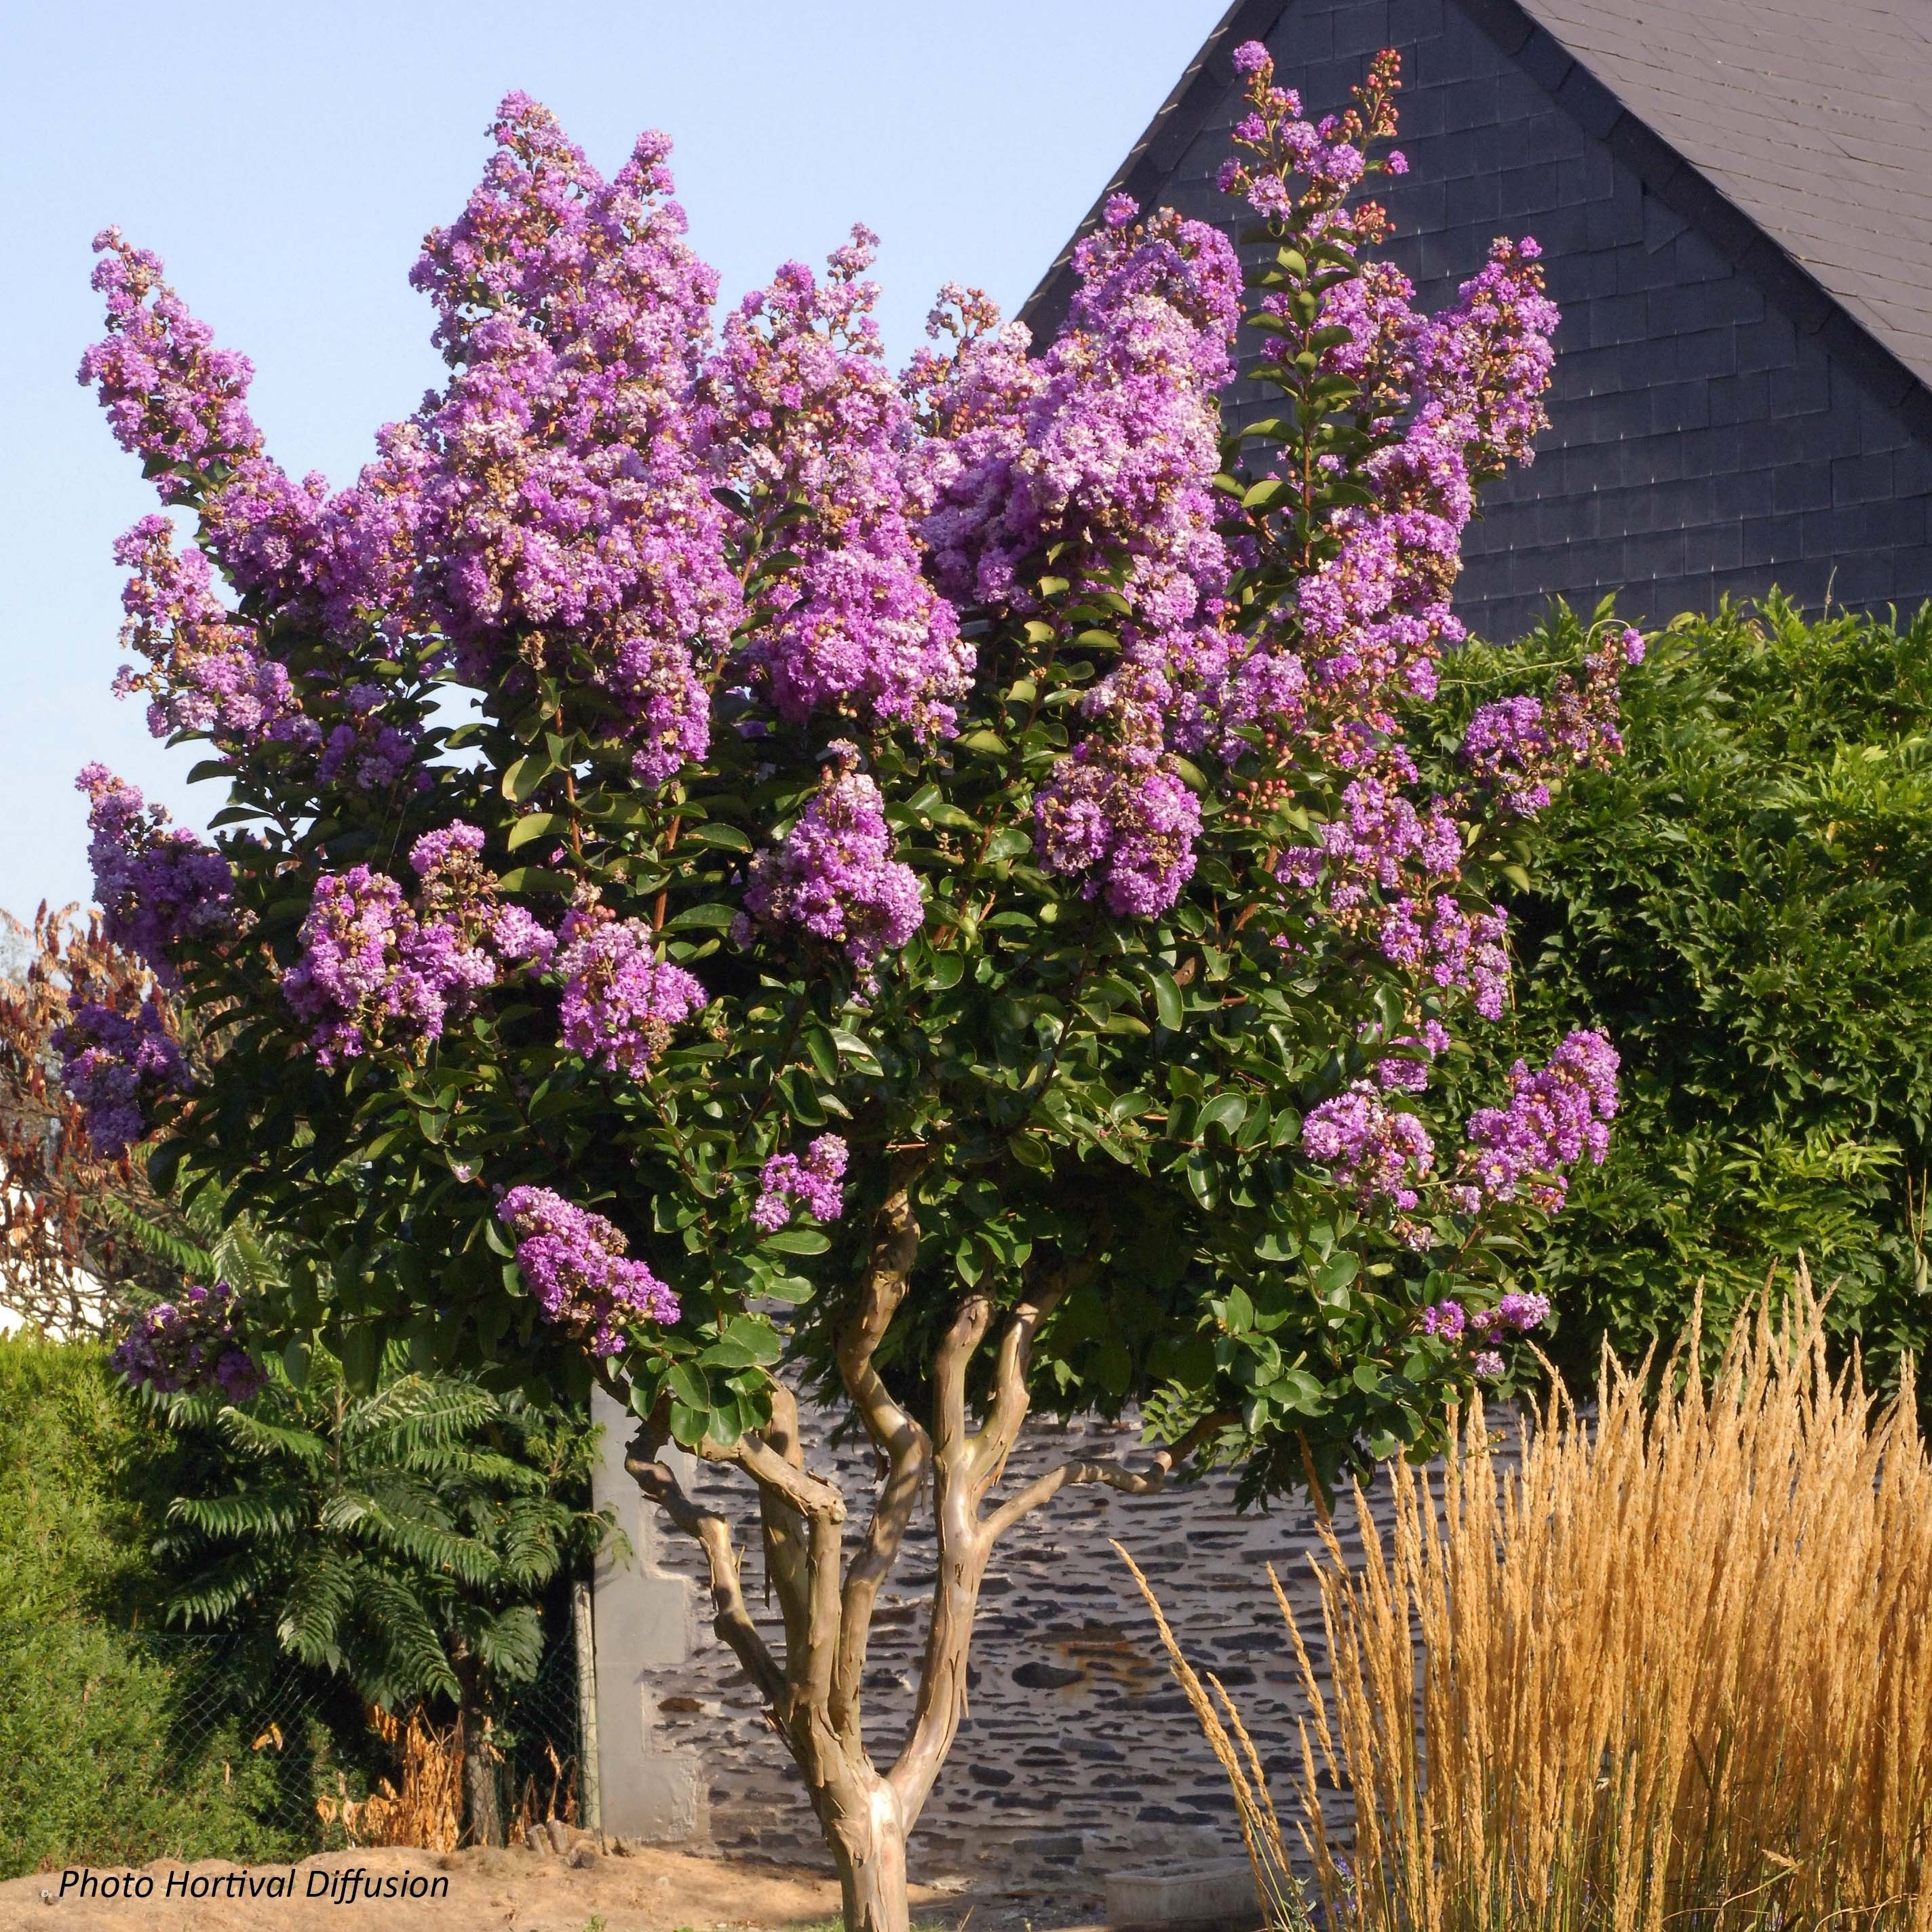 Lagerstroemia Lilac Grand Sud - Lilas des Indes.